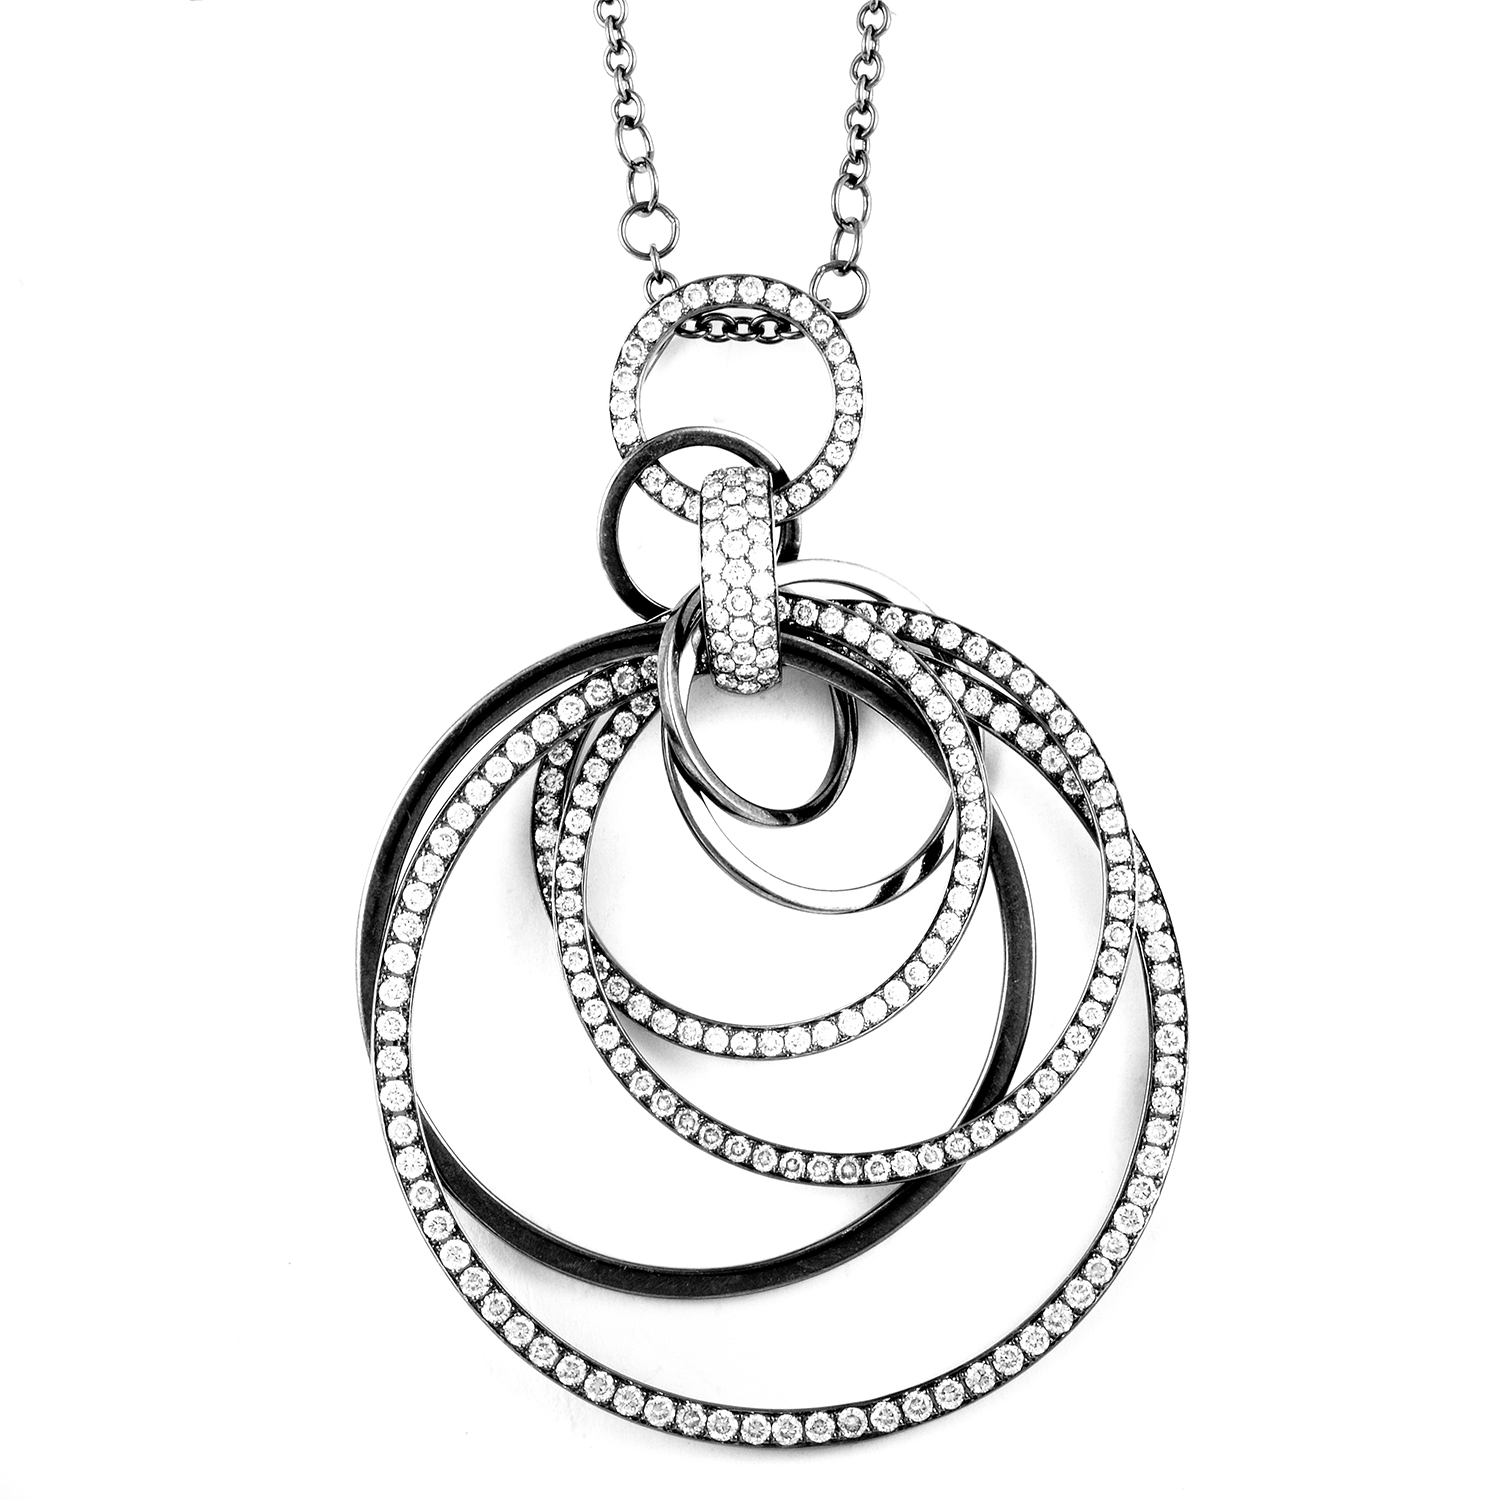 Women's 18K White Gold Diamond Pendant Necklace 21618913